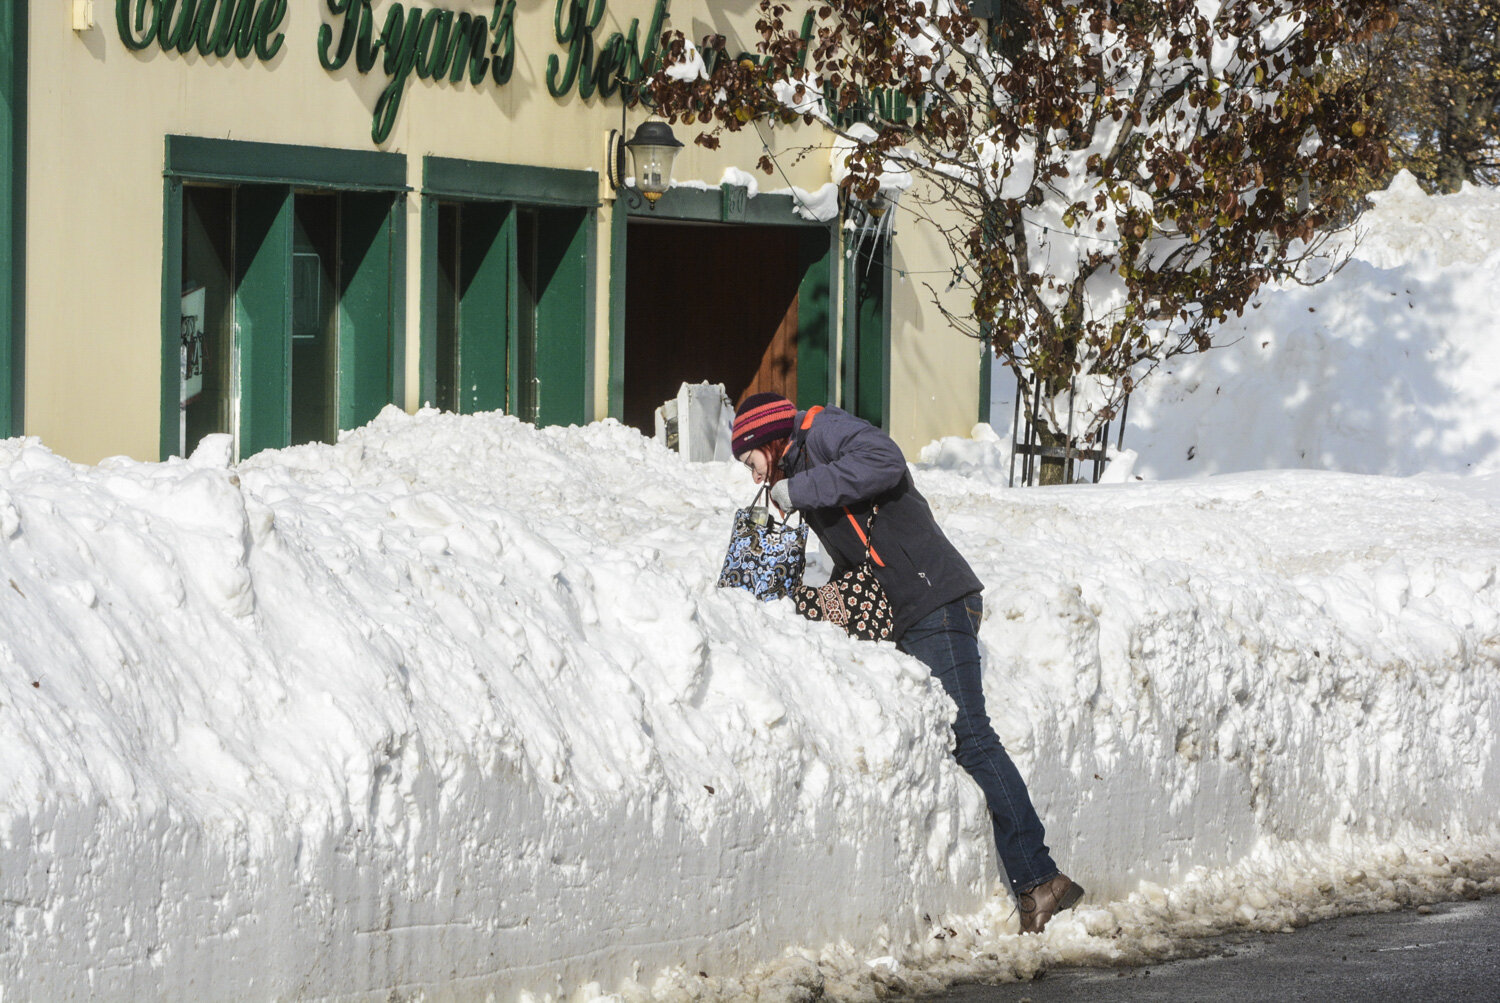 Jessica Ganska climbs over a four foot trench cut in Central Avenue, Lancaster, to get to work at Twin Village Music. Friday was the first reprieve from the relentless storm that battered the area for four days.